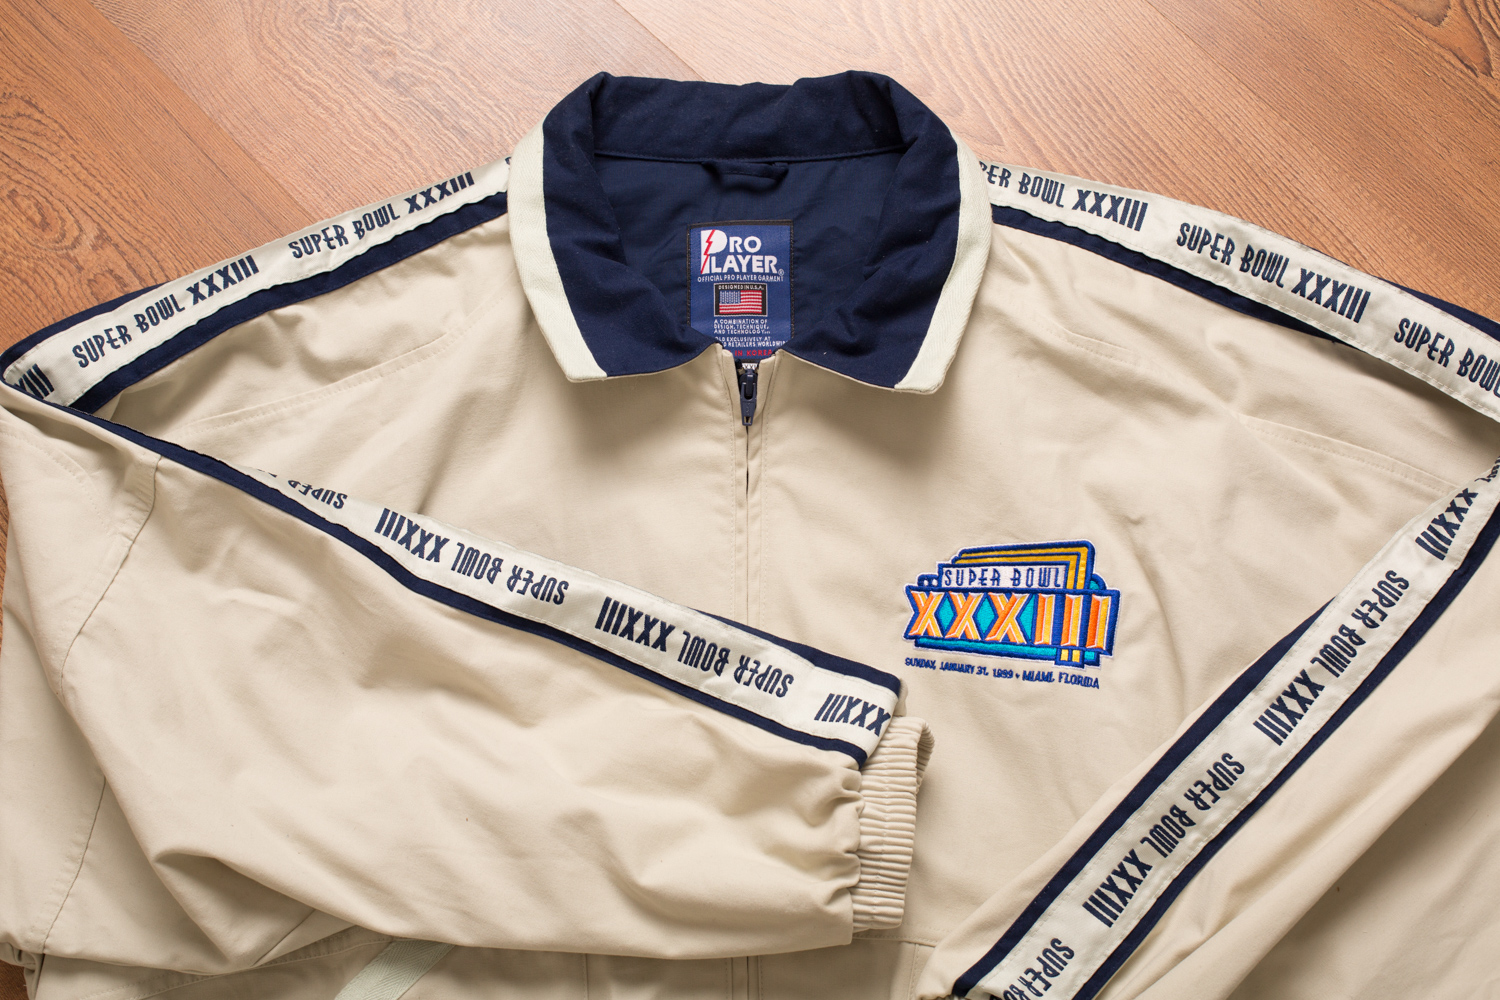 NFL Super Bowl XXXIII Jacket